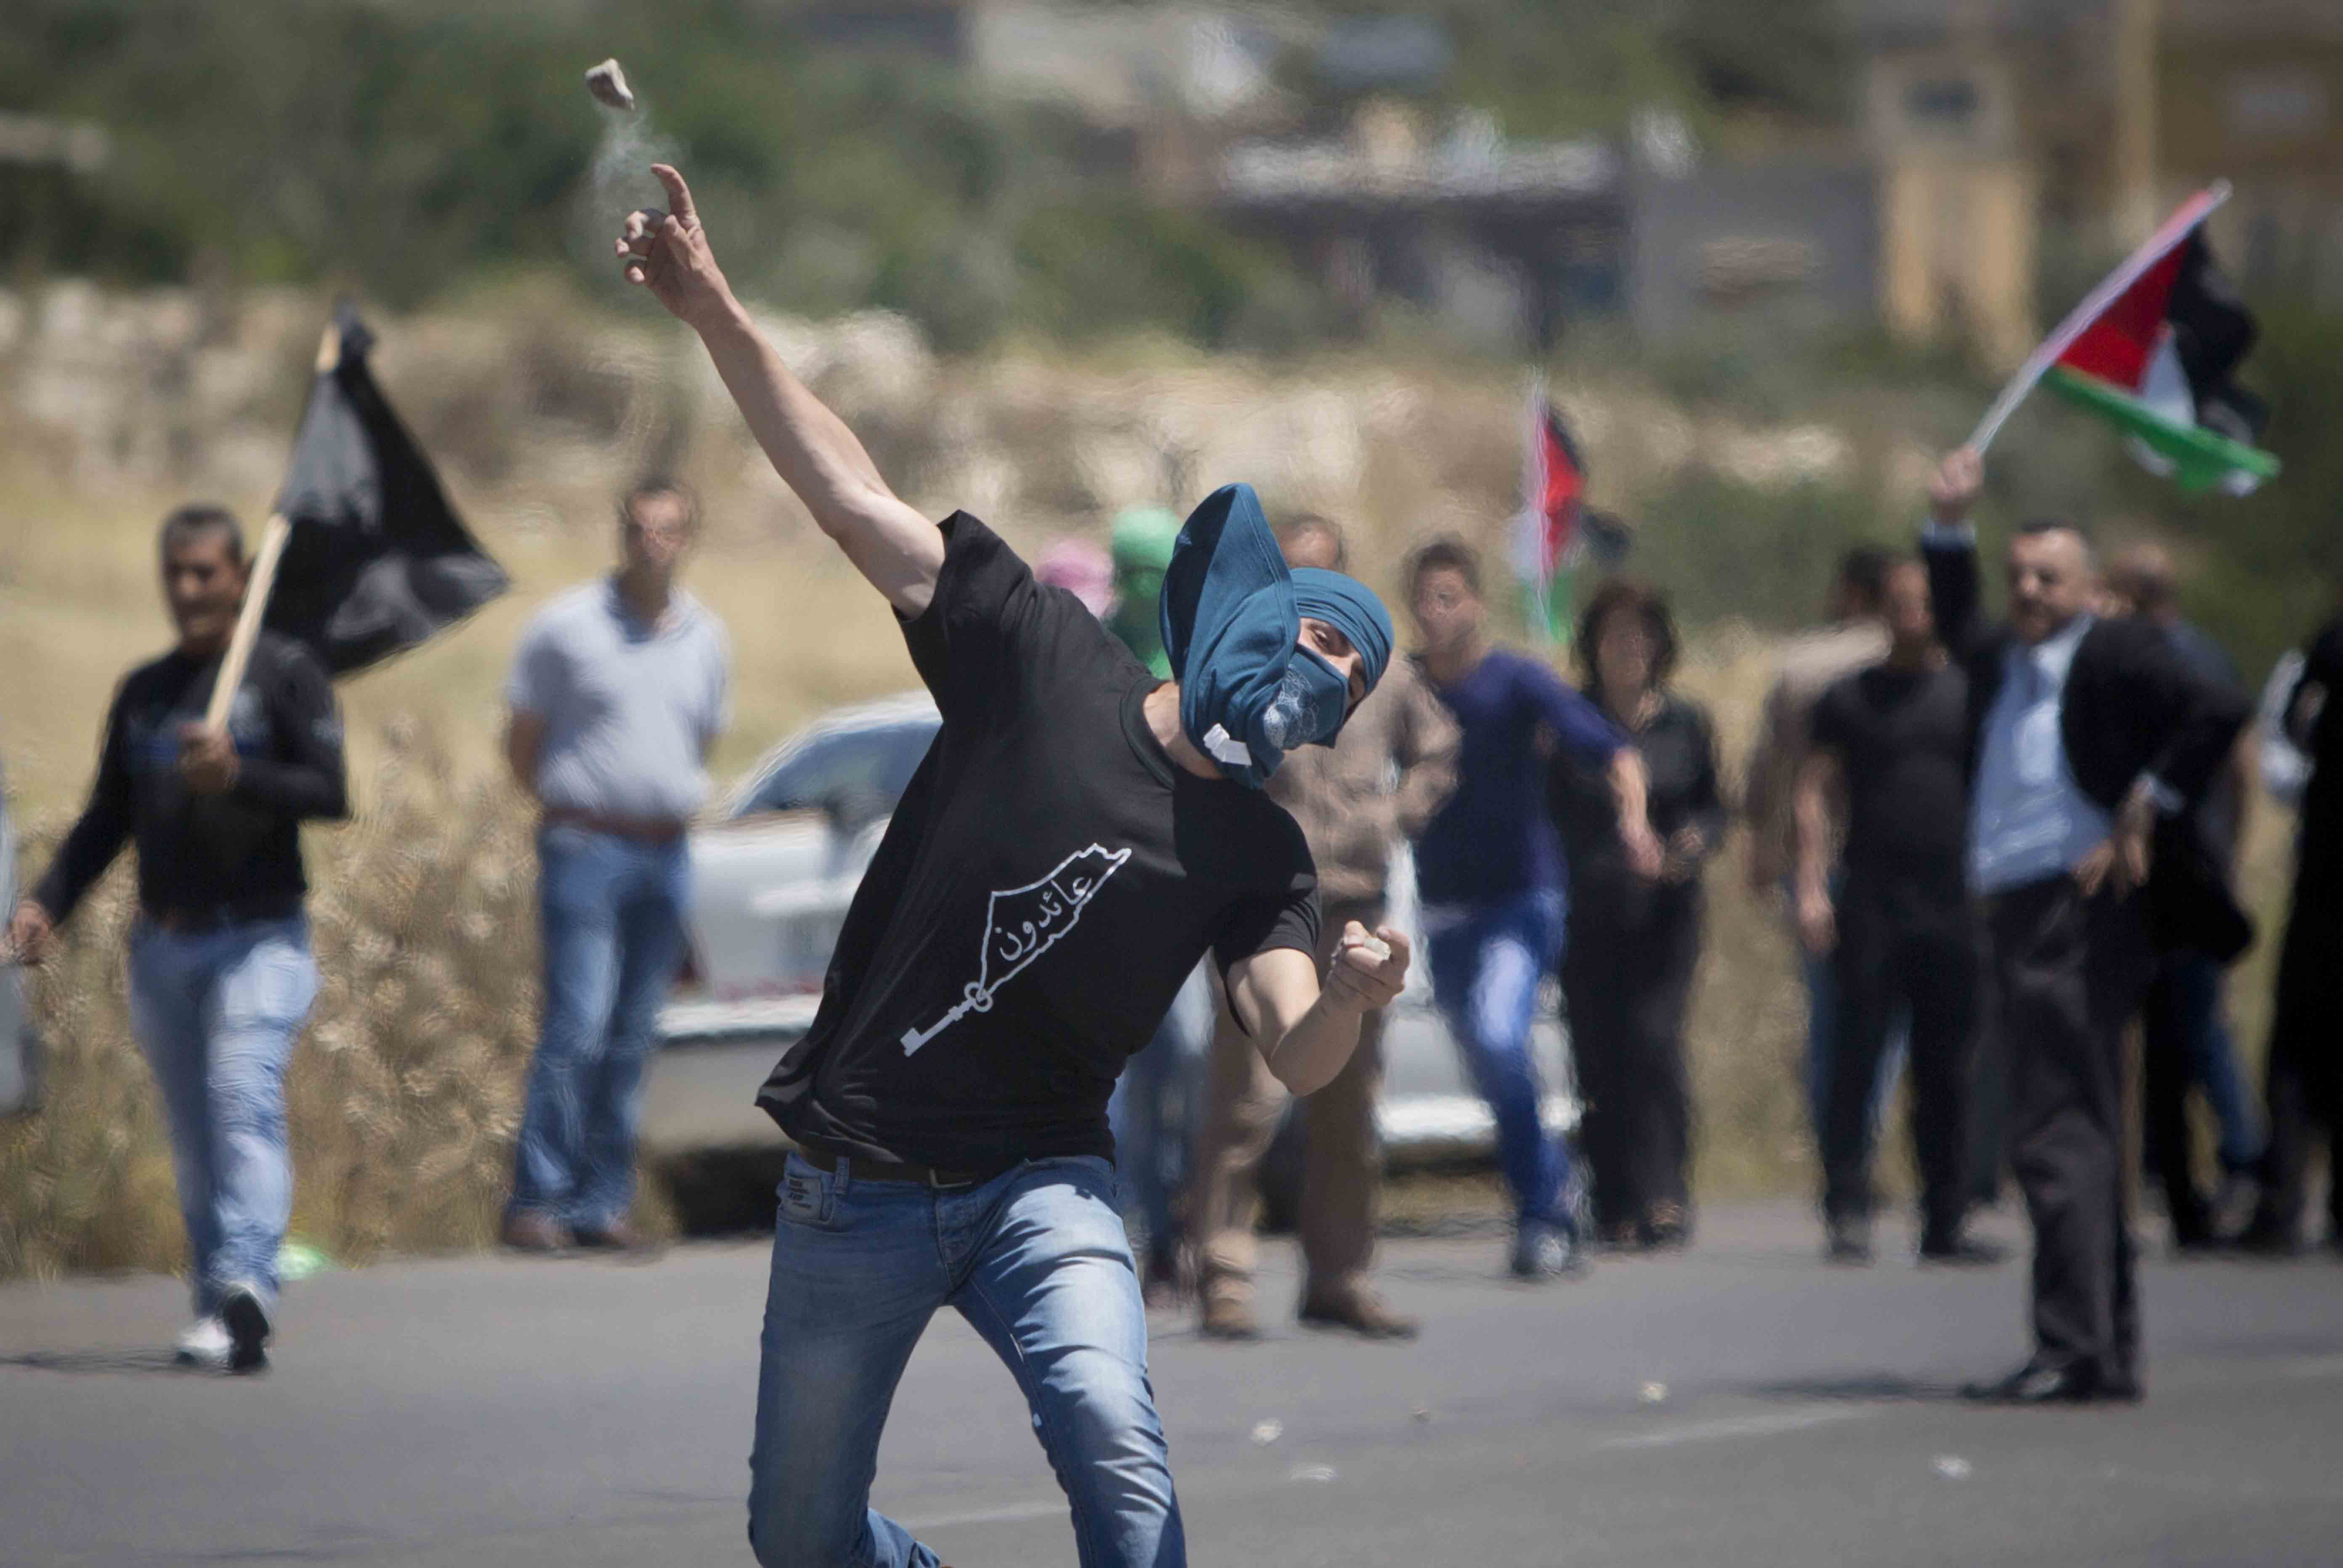 CORRECTS SECOND SENTENCE - A Palestinian throws a stone at Israeli troops during clashes after a rally marking Nakba Day at Hawara checkpoint near the West Bank city of Nablus, Saturday, May 16, 2015. Palestinians annually mark the Nakba Day, or the Day of the Catastrophe, when hundreds of thousands of Palestinians fled, or were expelled from their homes during the first Israeli-Arab war in 1948. (AP Photo/Majdi Mohammed)